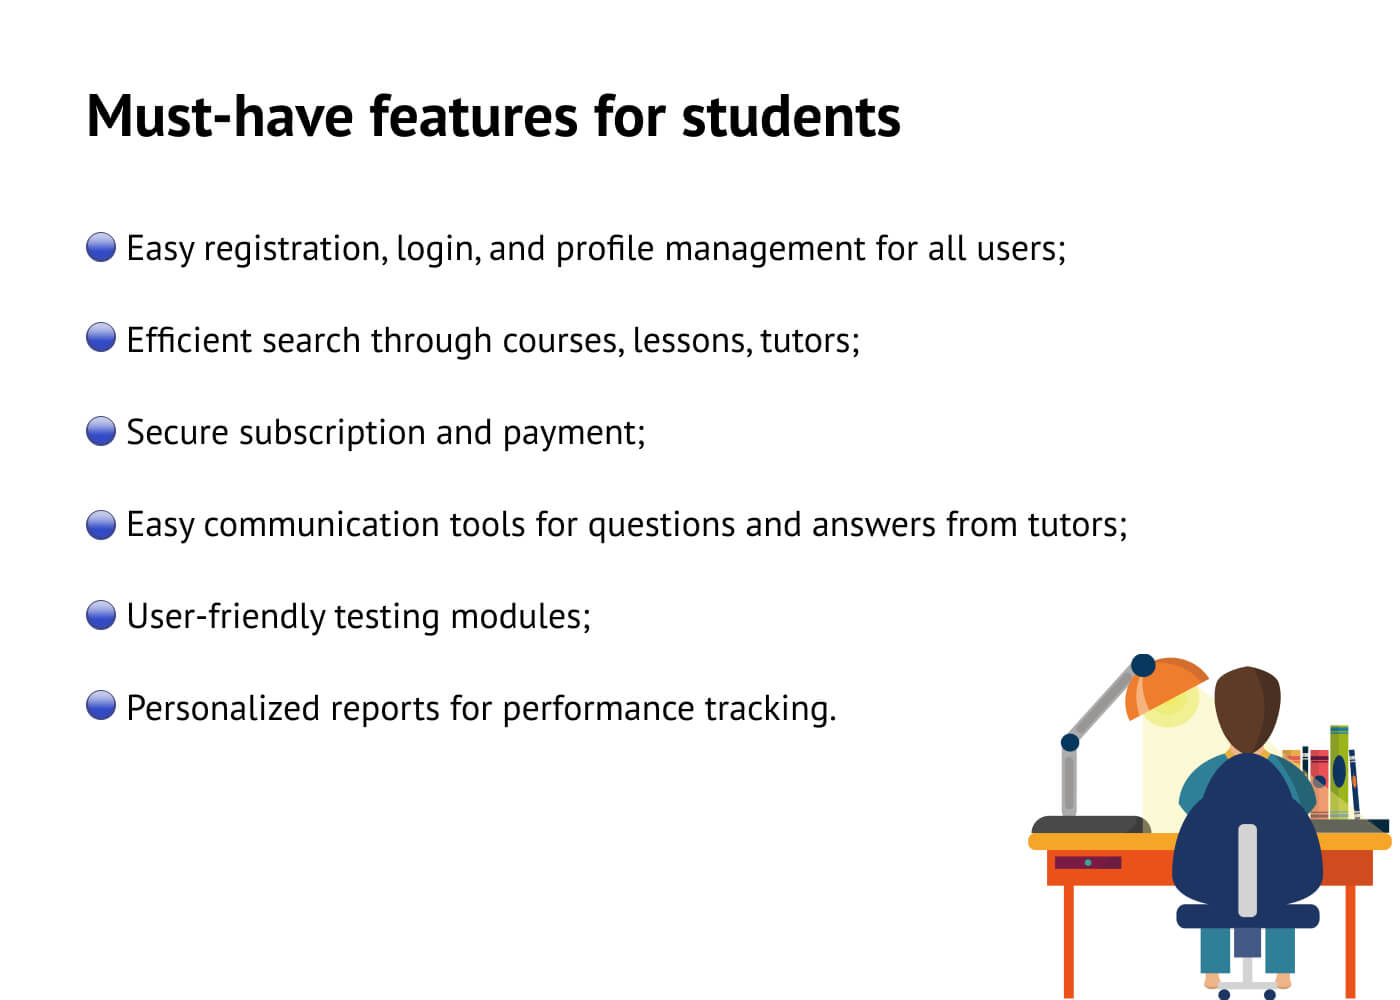 E-learning features for students